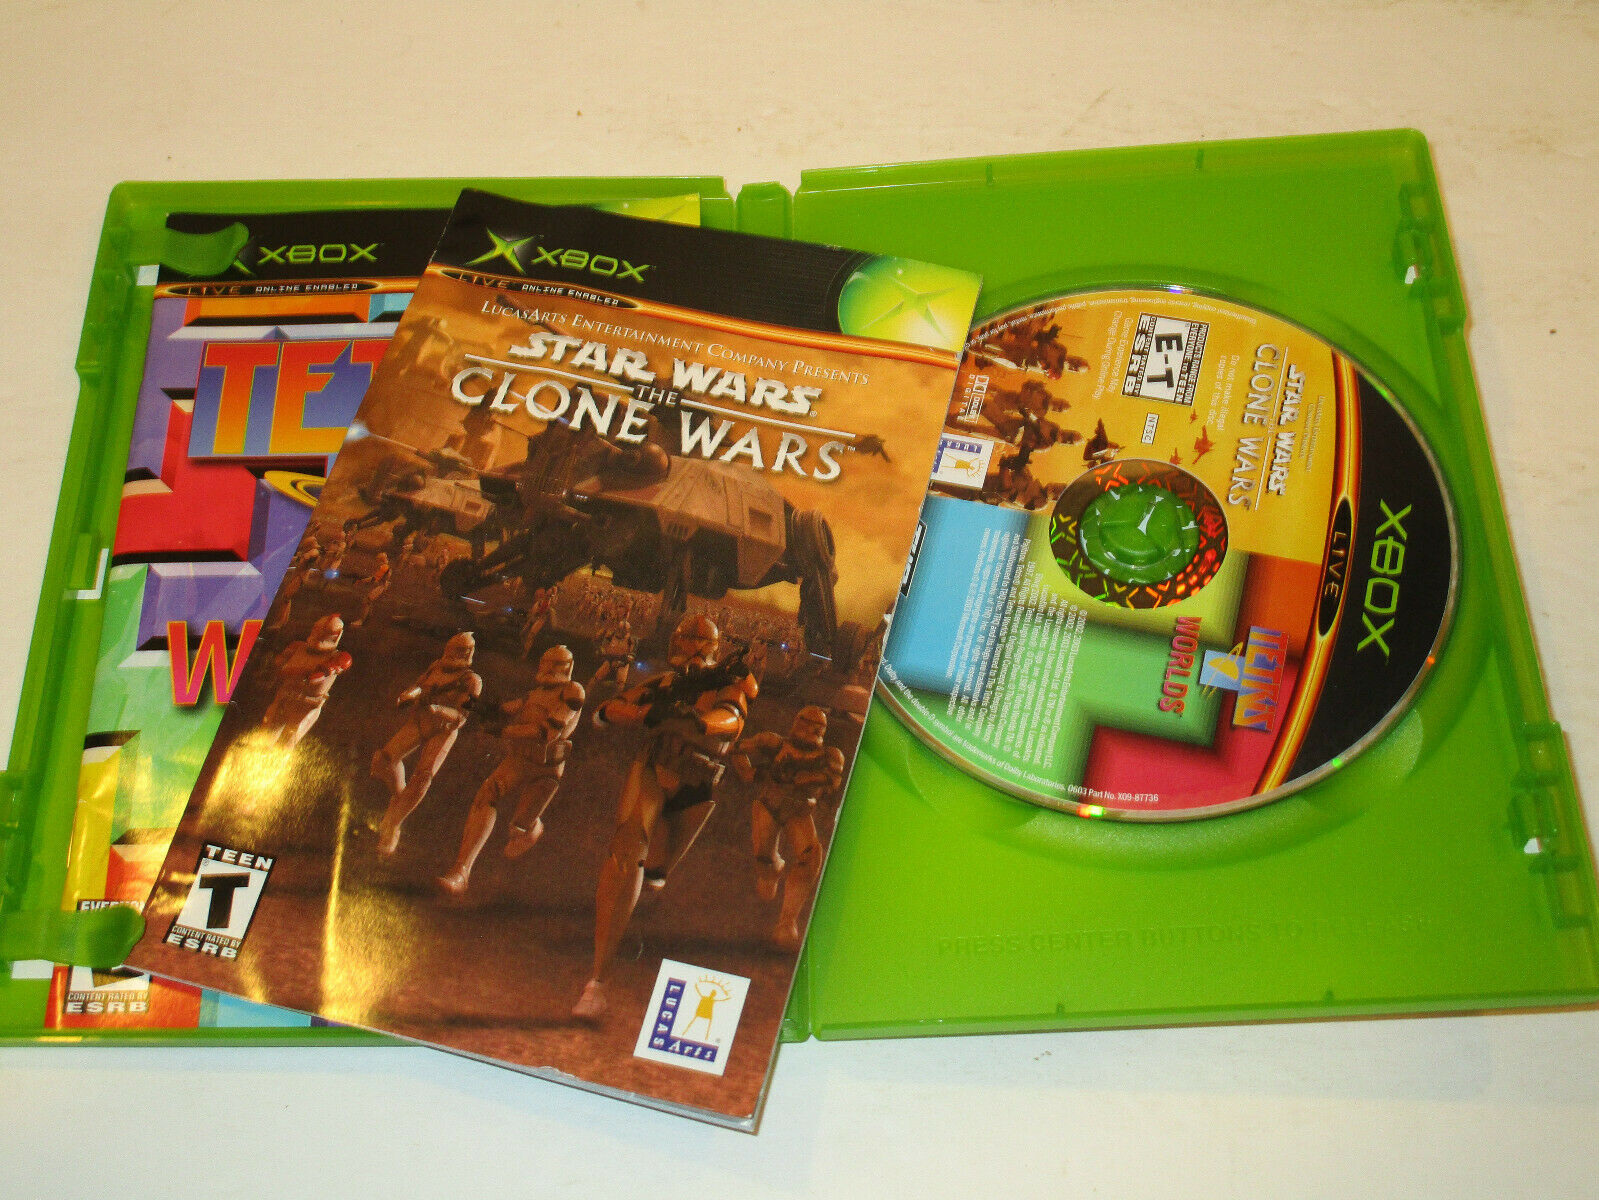 Star Wars Clone Wars / Tetris For Original Xbox Very Good Condtion With Manual  - $8.95